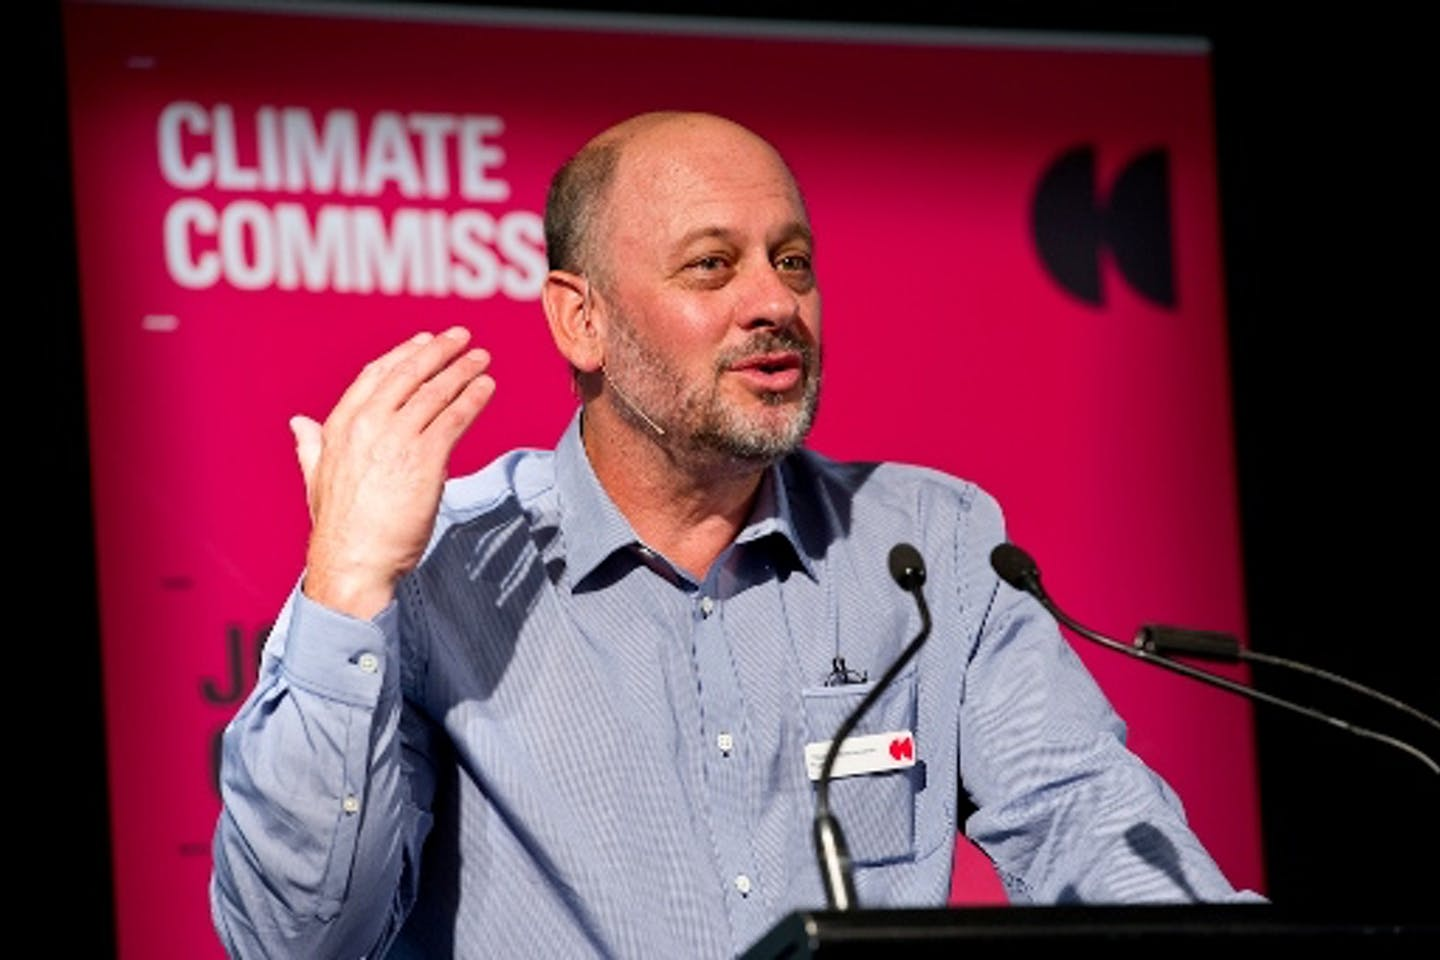 Australia's Climate Commission chief Tim Flannery